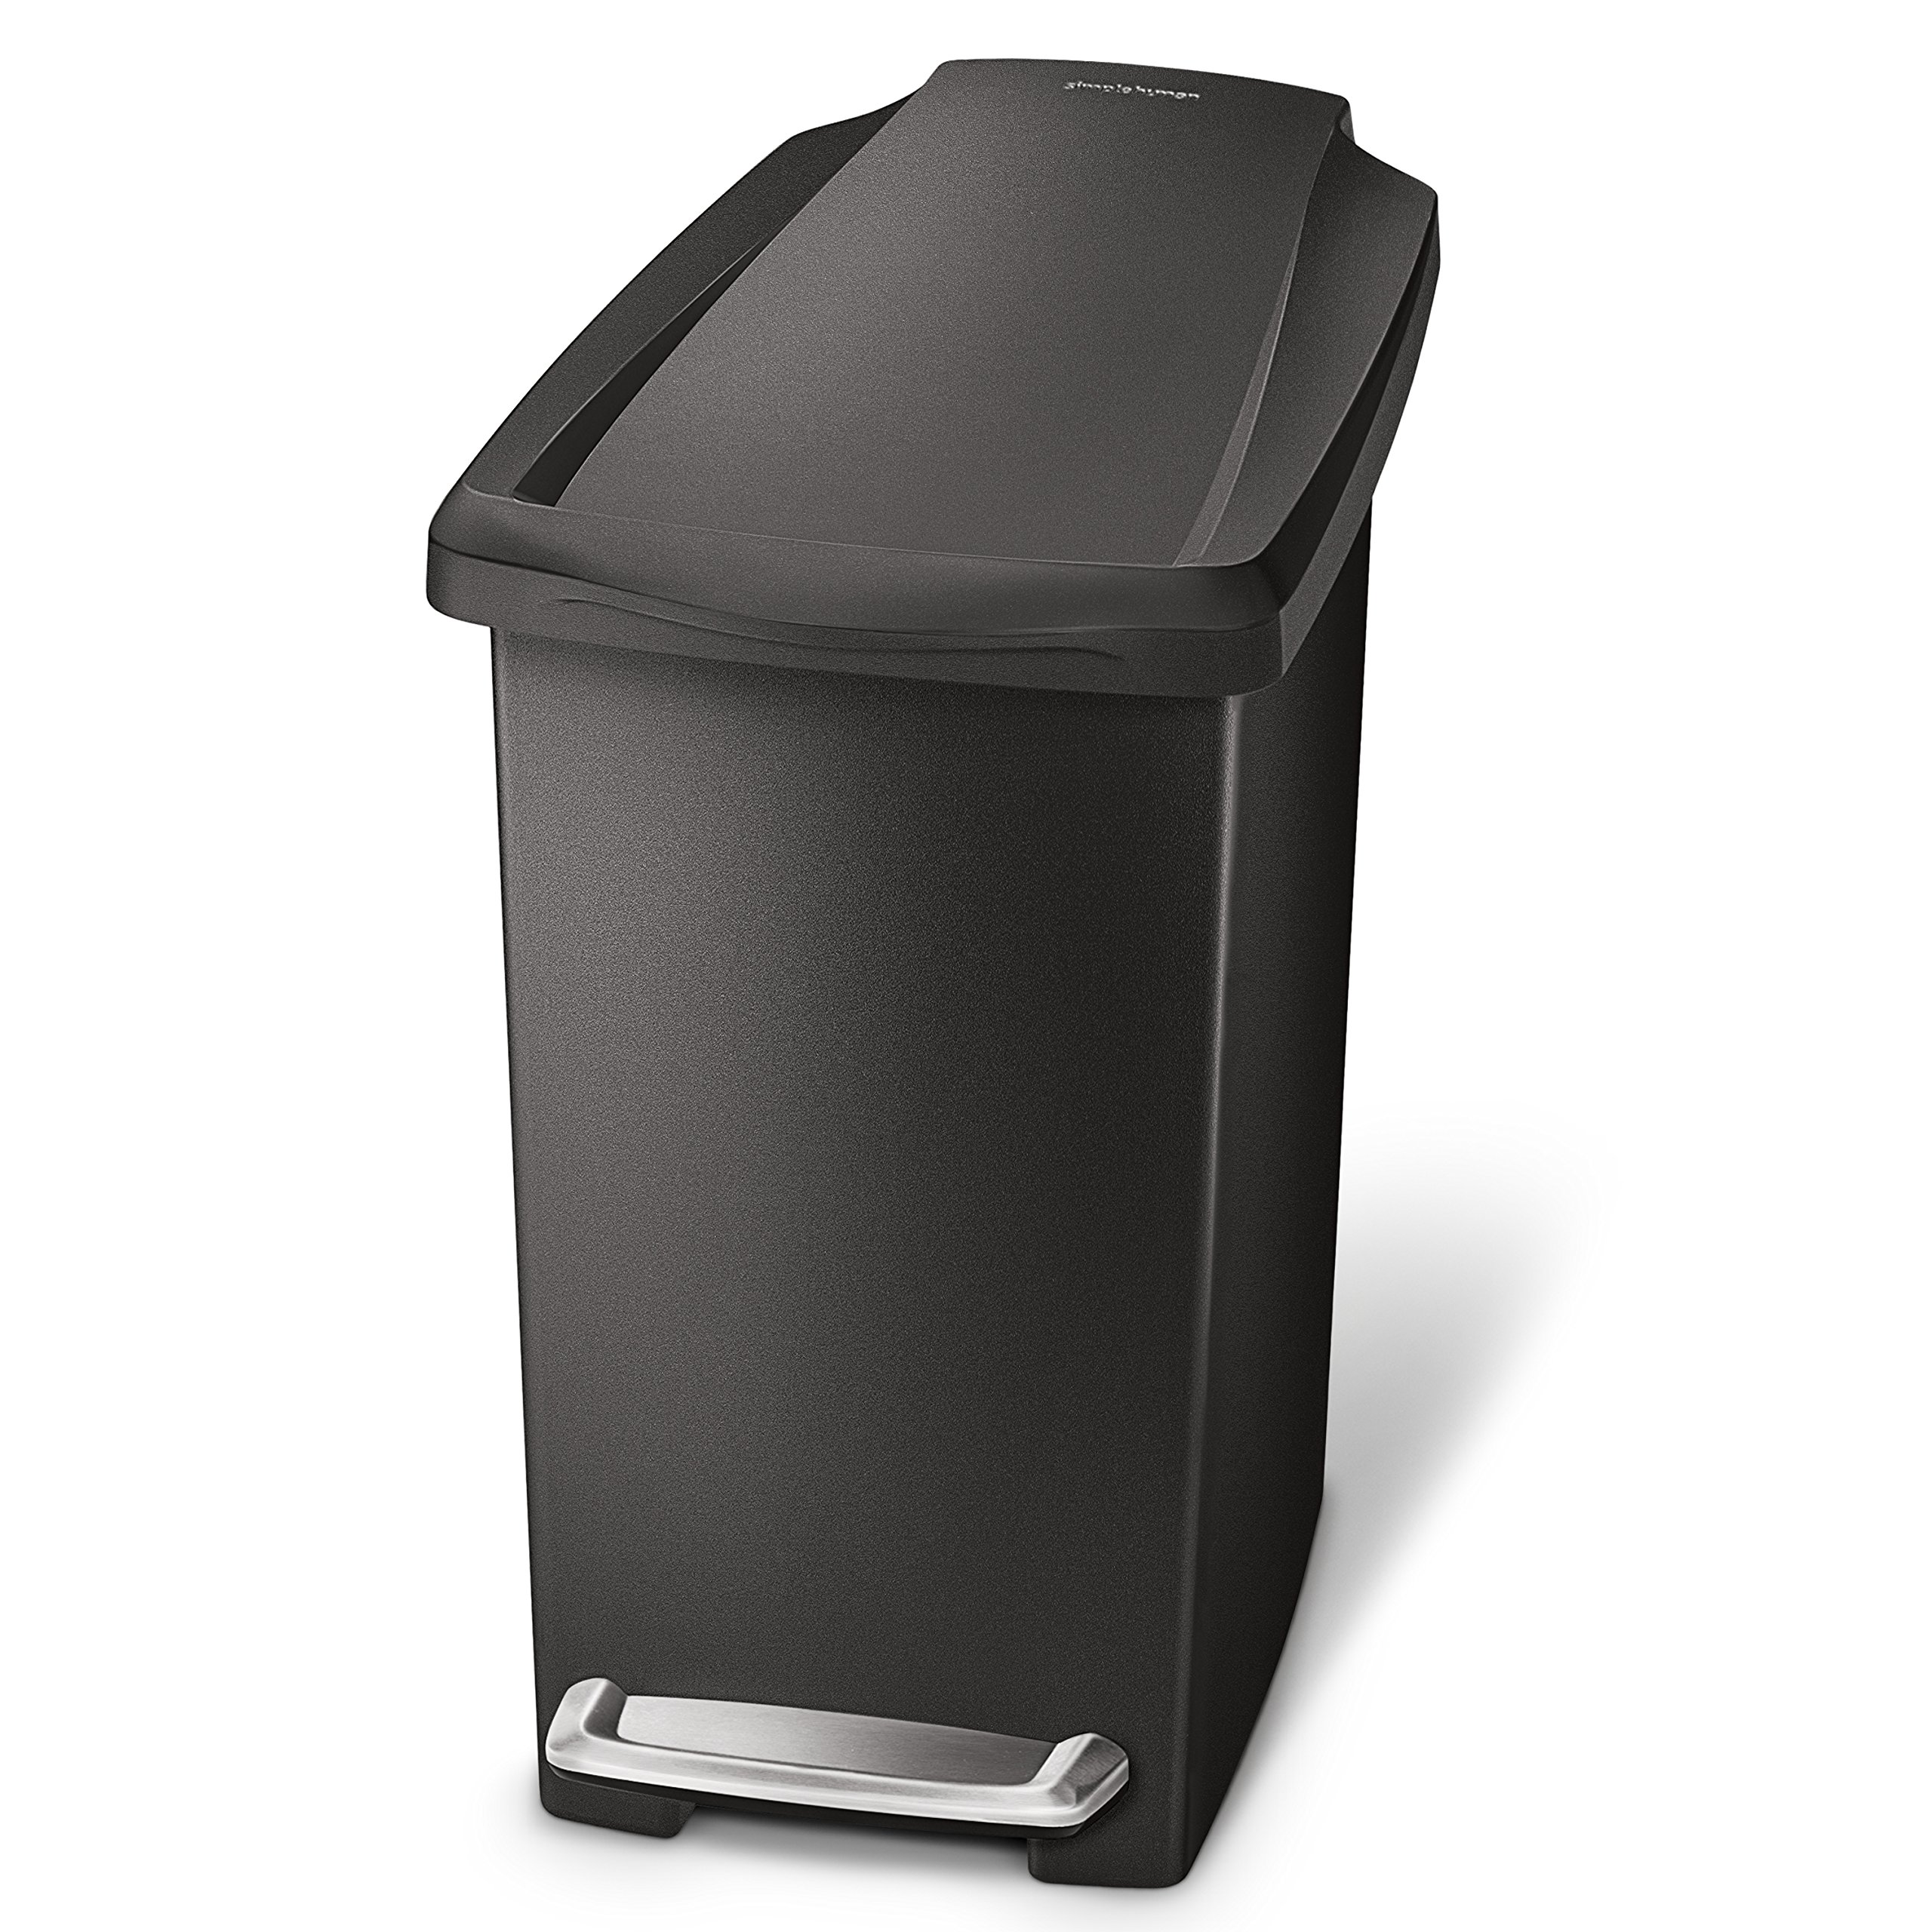 simplehuman 10 Liter/2.6 Gallon Compact Slim Bathroom or Office Step Trash Can, Black Plastic by simplehuman